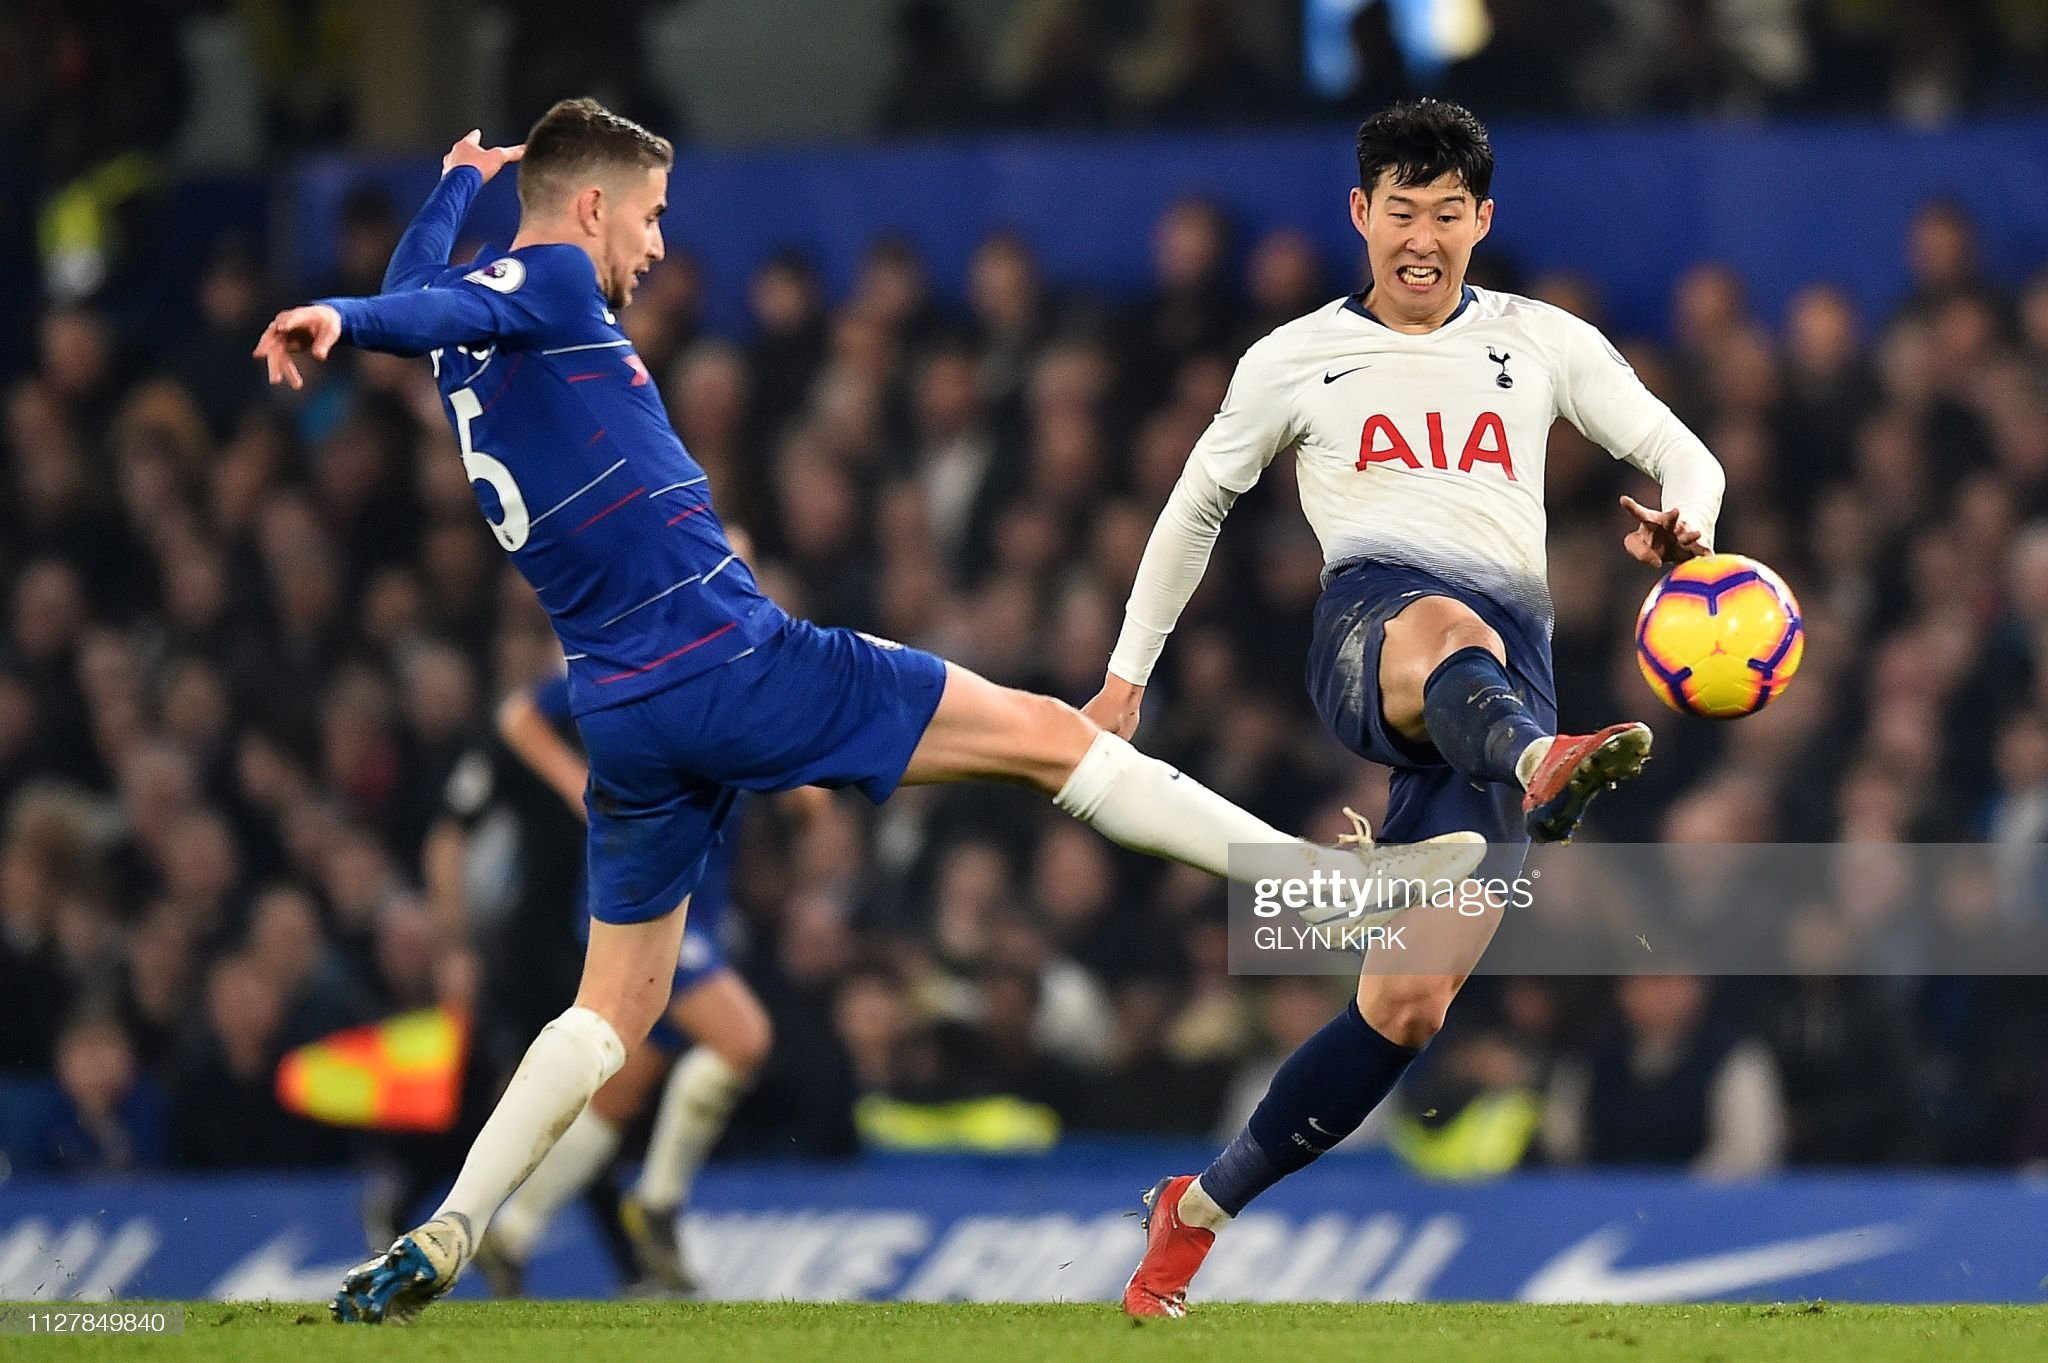 Tottenham v Chelsea preview, prediction and odds